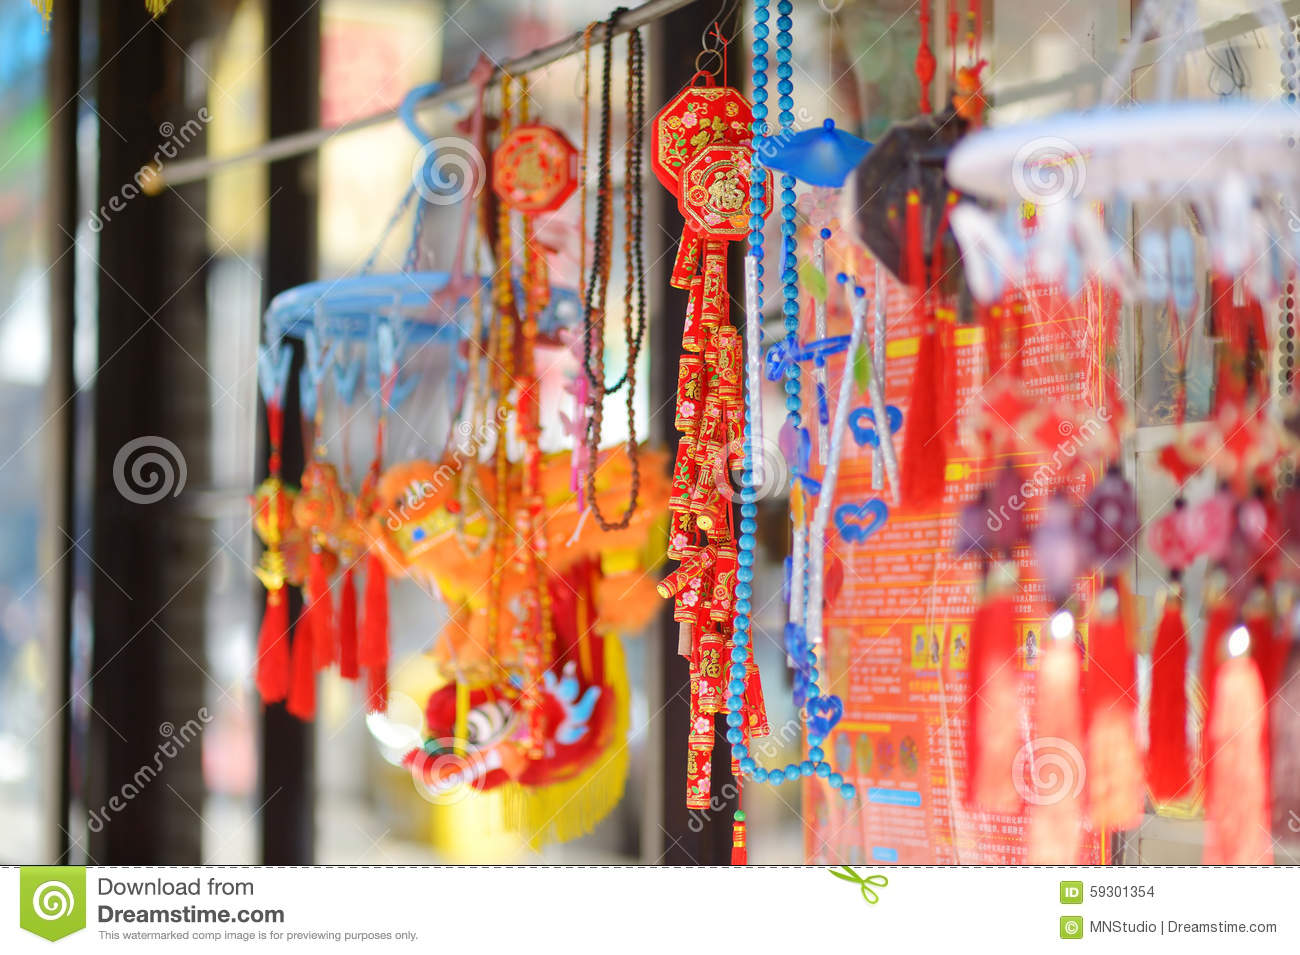 new york city chinese dating Sex & dating in new york city: time out offers new york's best guide to date ideas, speed dating, singles bars and hookup spots.